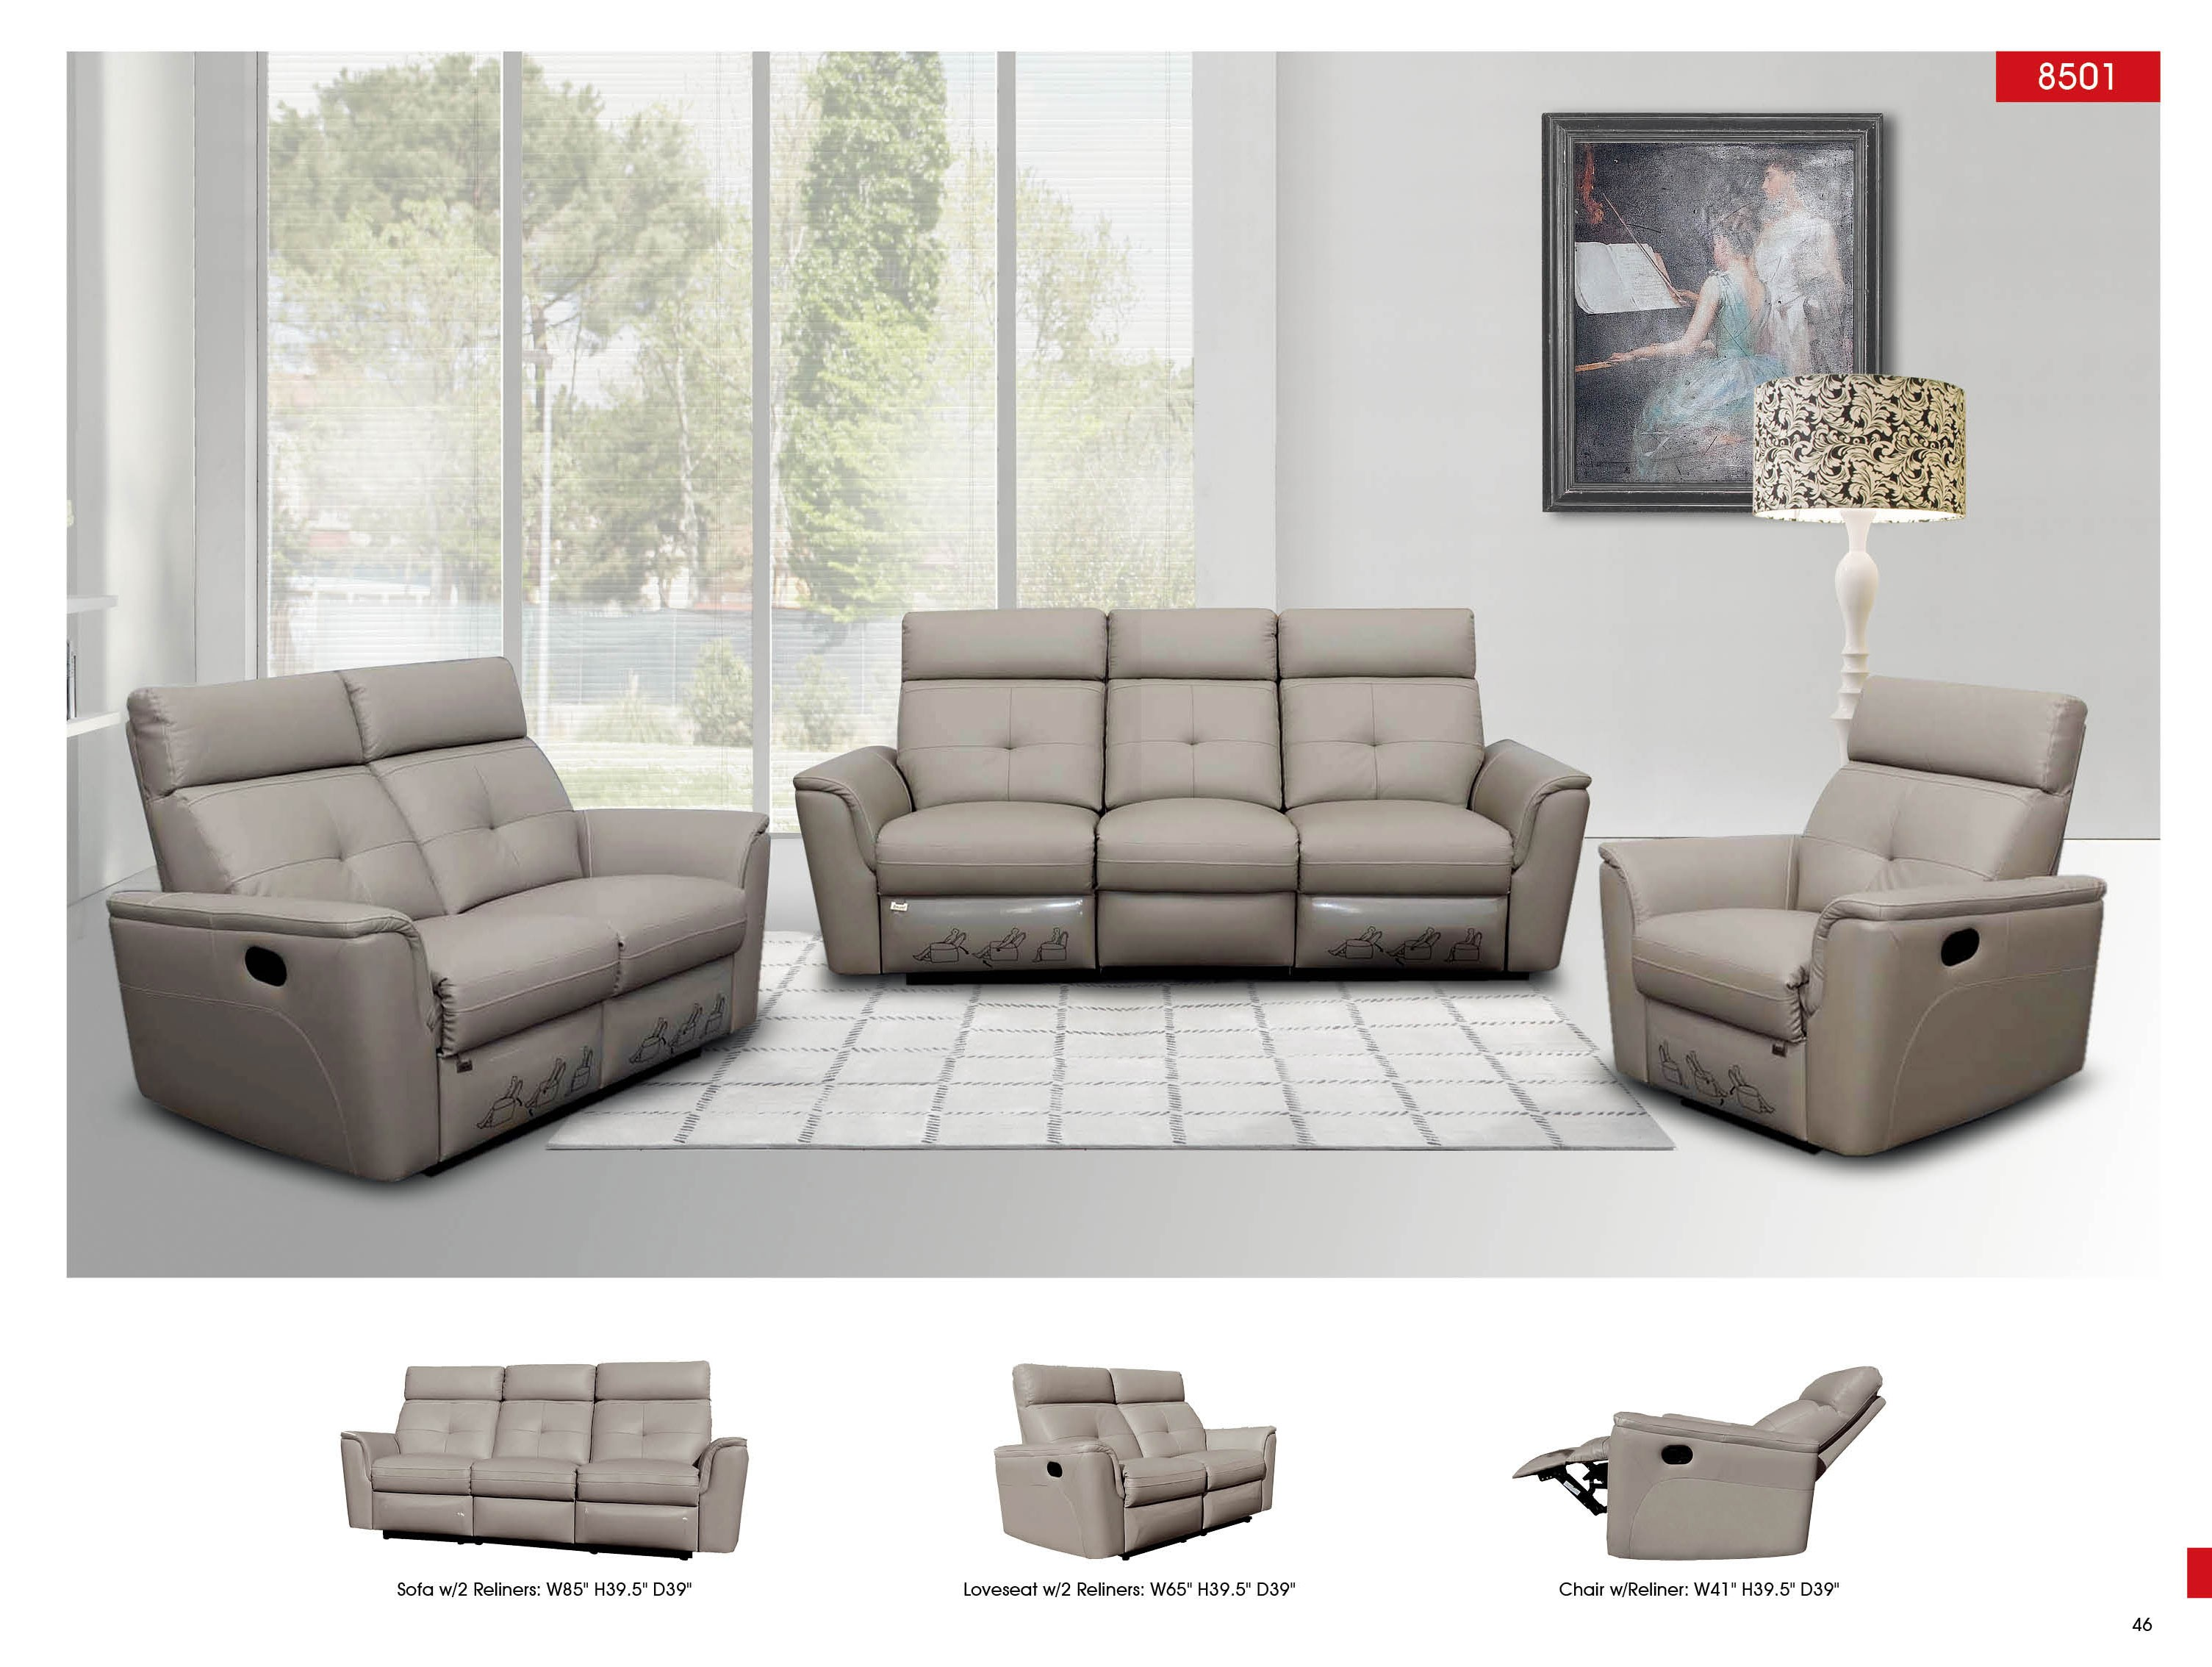 8501 Contemporary Contemporary Reclining Leather Sofa NOVA